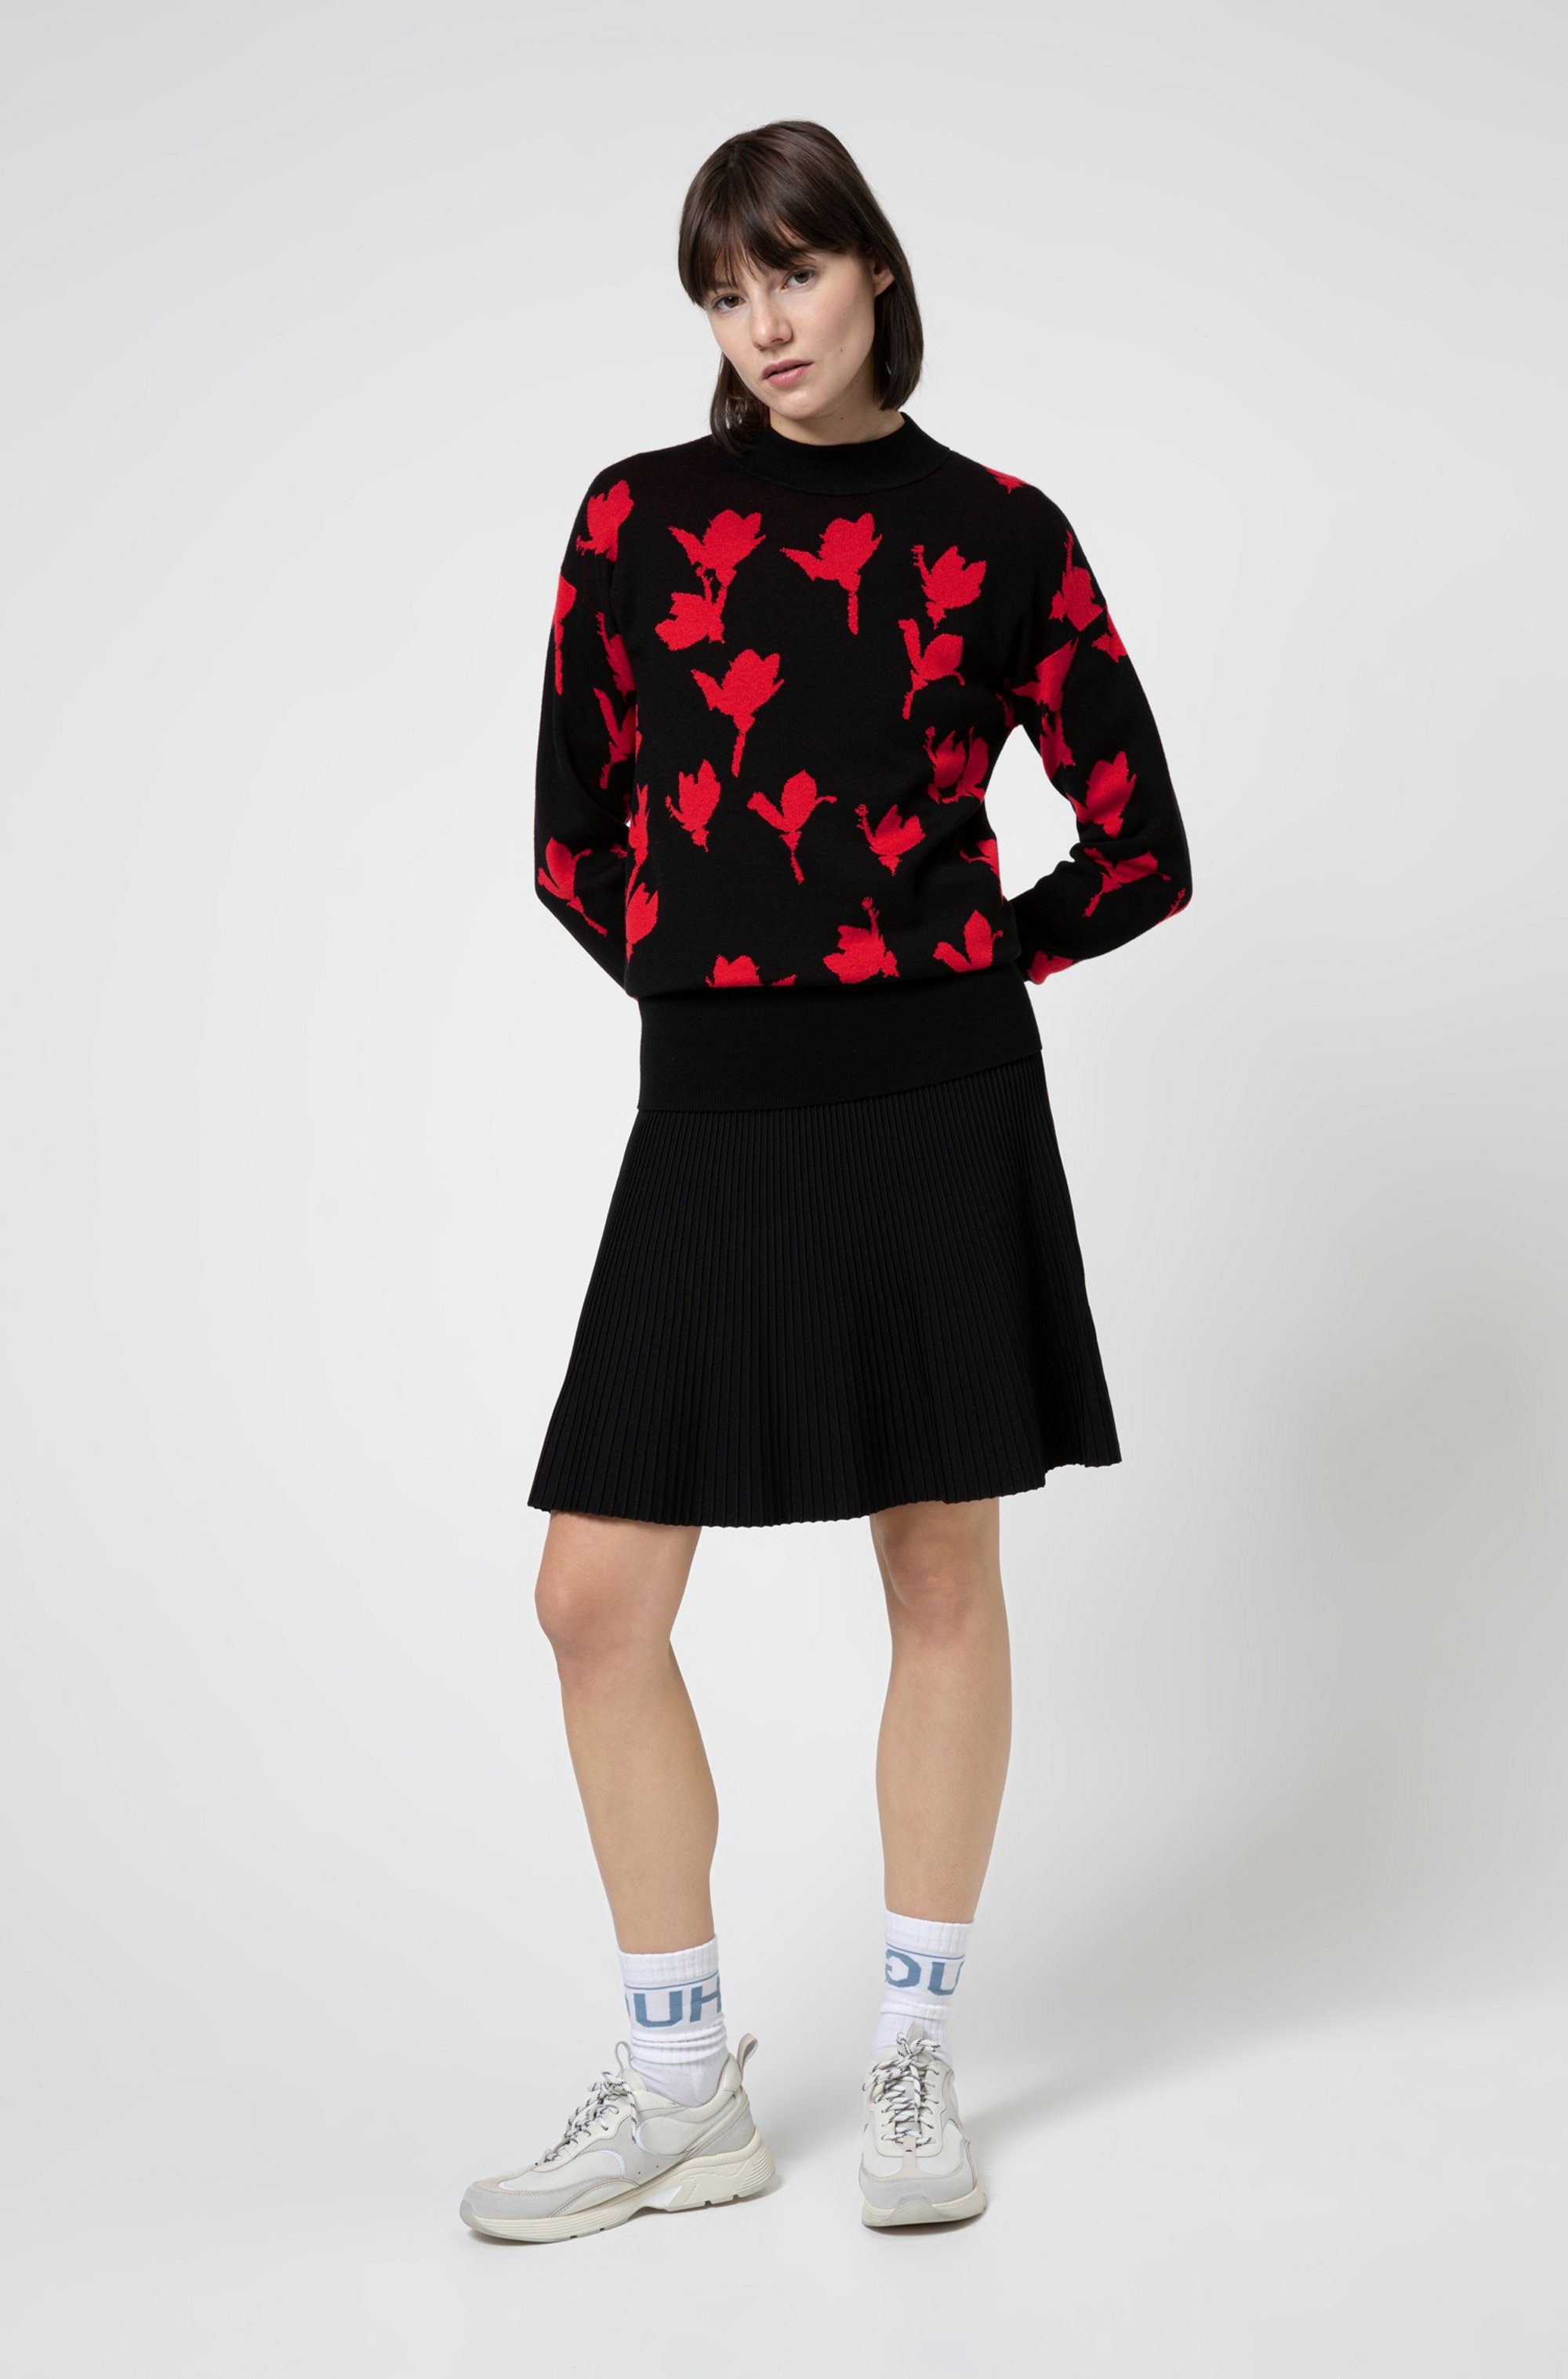 Relaxed-fit sweater with jacquard-woven cherry-blossom motif